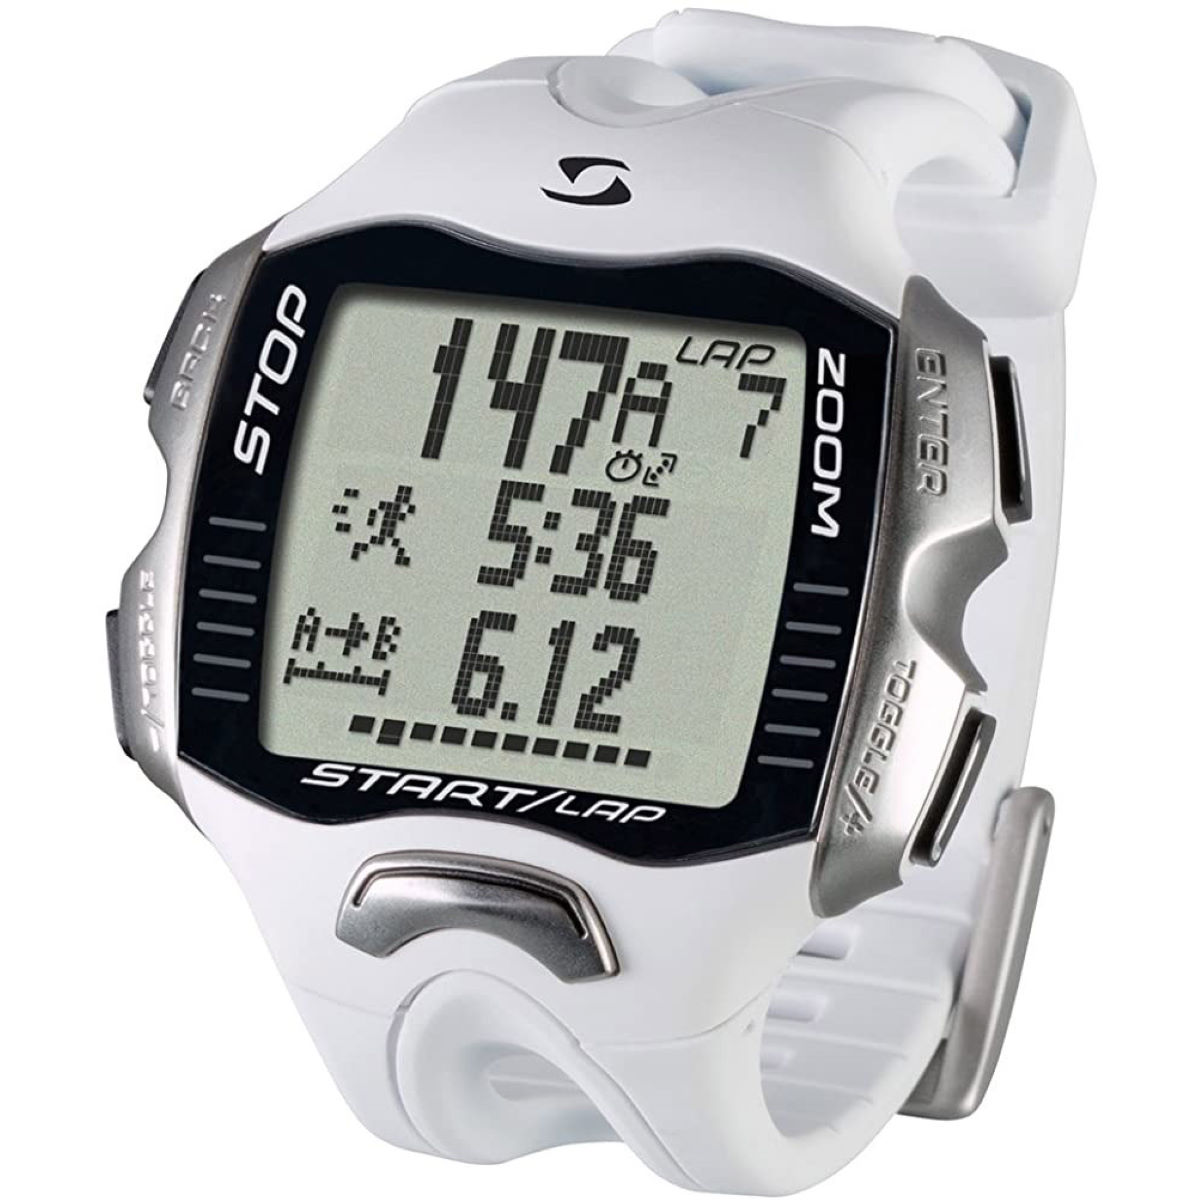 Sigma RC Move Pulse Watch Watches